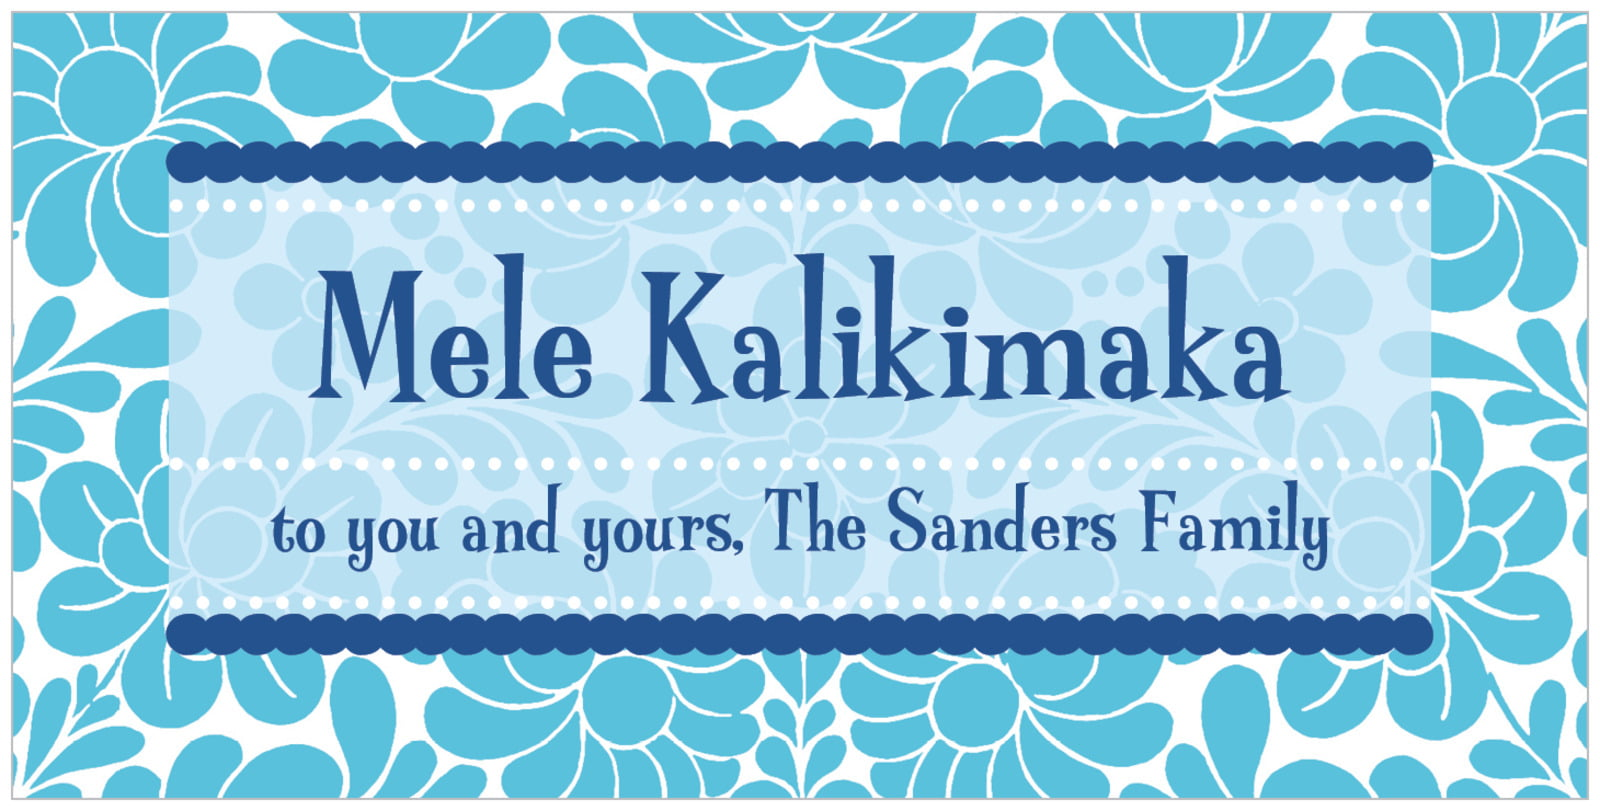 small rectangular food/craft labels - ice blue - mele kalikimaka (set of 24)